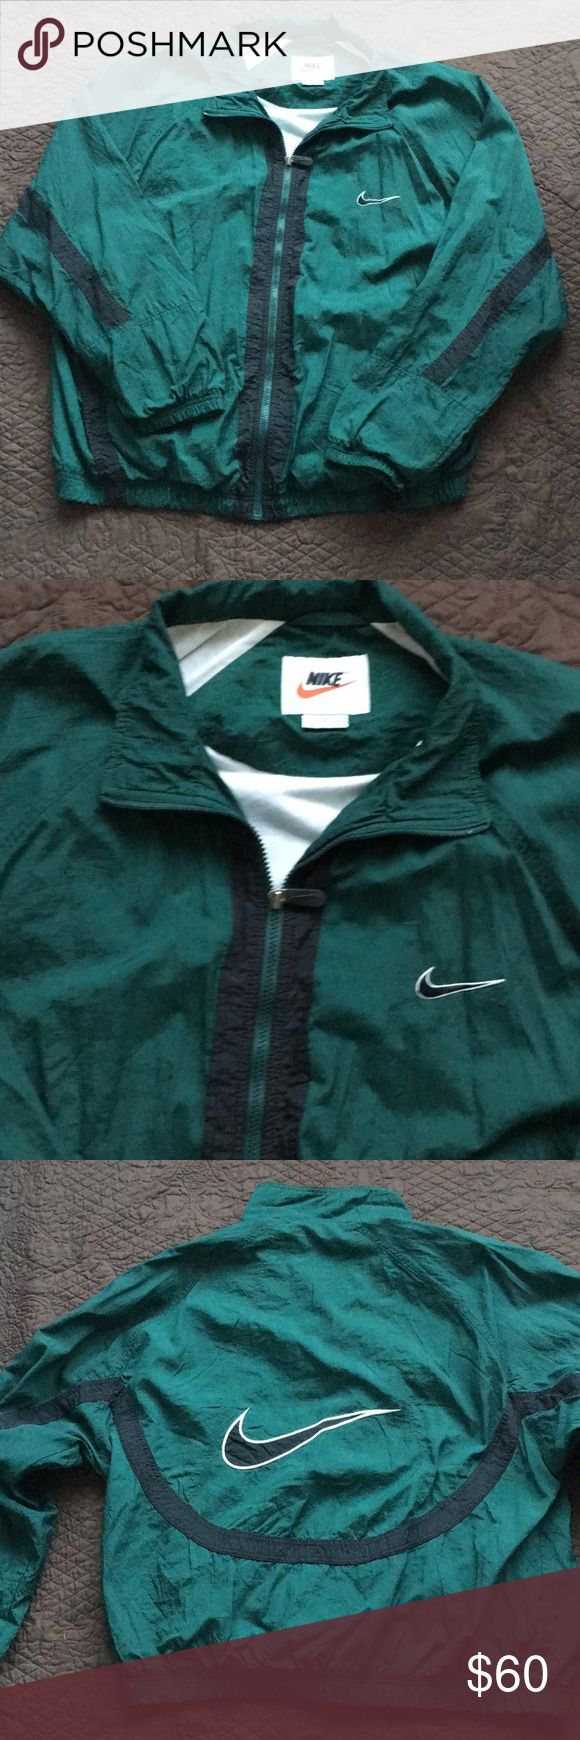 Vintage Nike jacket/windbreaker Rare! Very cool design going across the front and across the back. With big Nike check on back! I'm a fast shipper usually shipping the day after you purchase. Make me a great offer and I'll wrap it up for you. 🎁 Nike Jackets & Coats Windbreakers